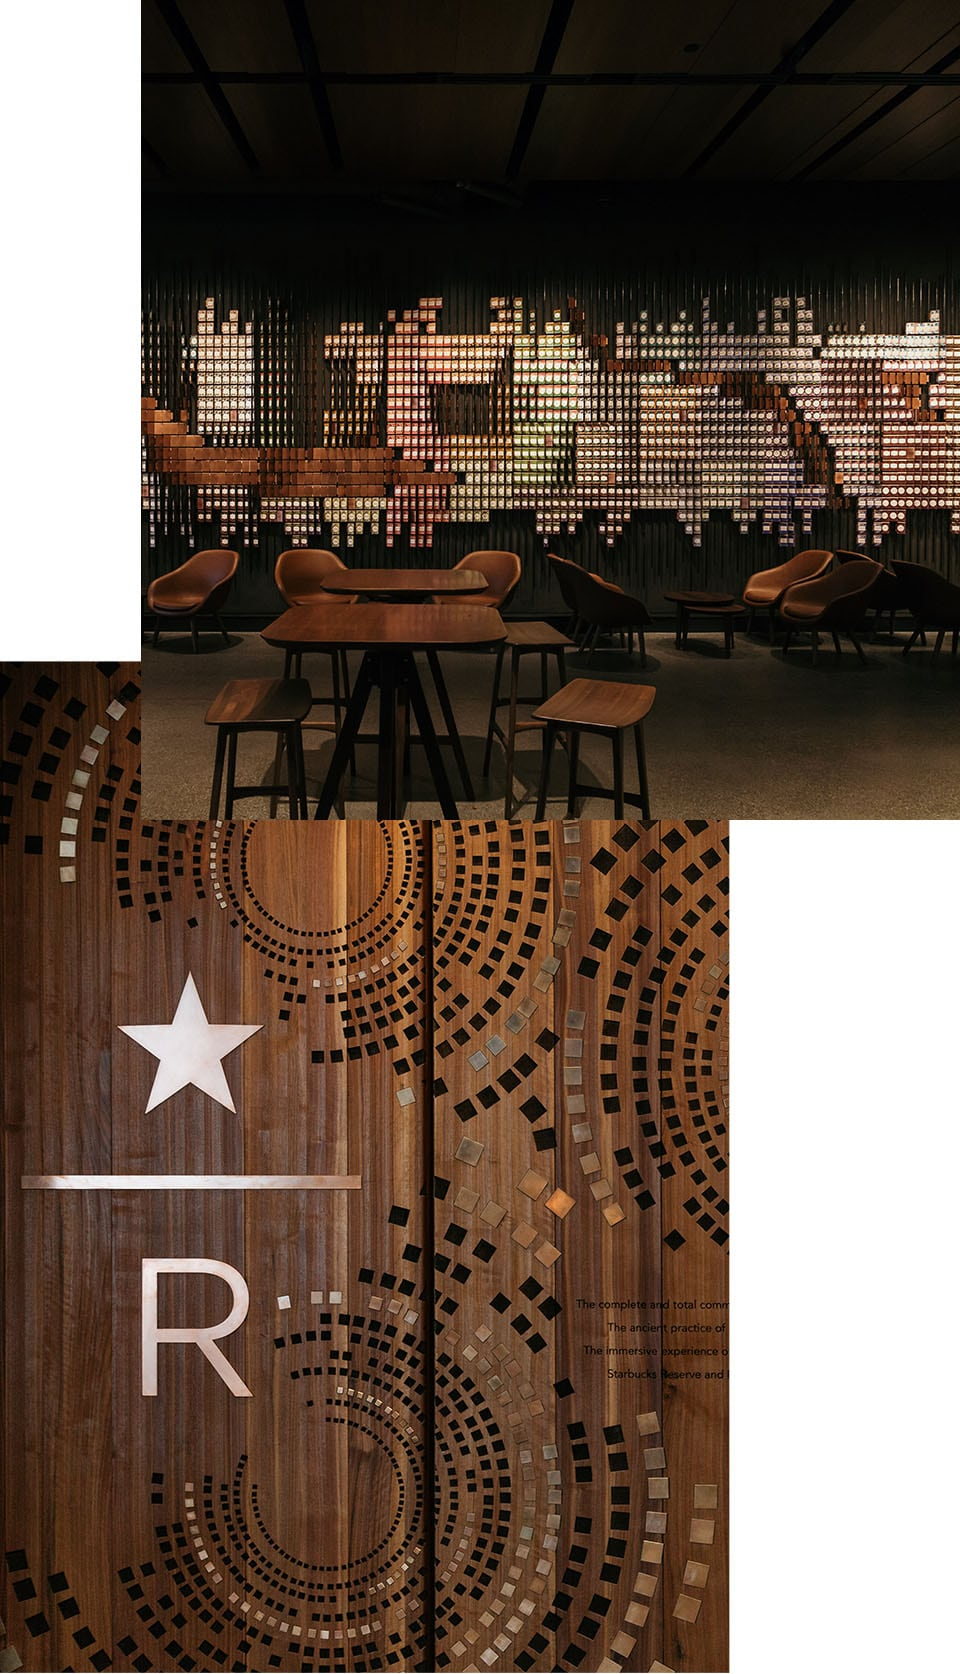 Collage of interior space with wooden furniture and art piece on wall and abstract image of Starbucks Reserve logo and decorative items on wood